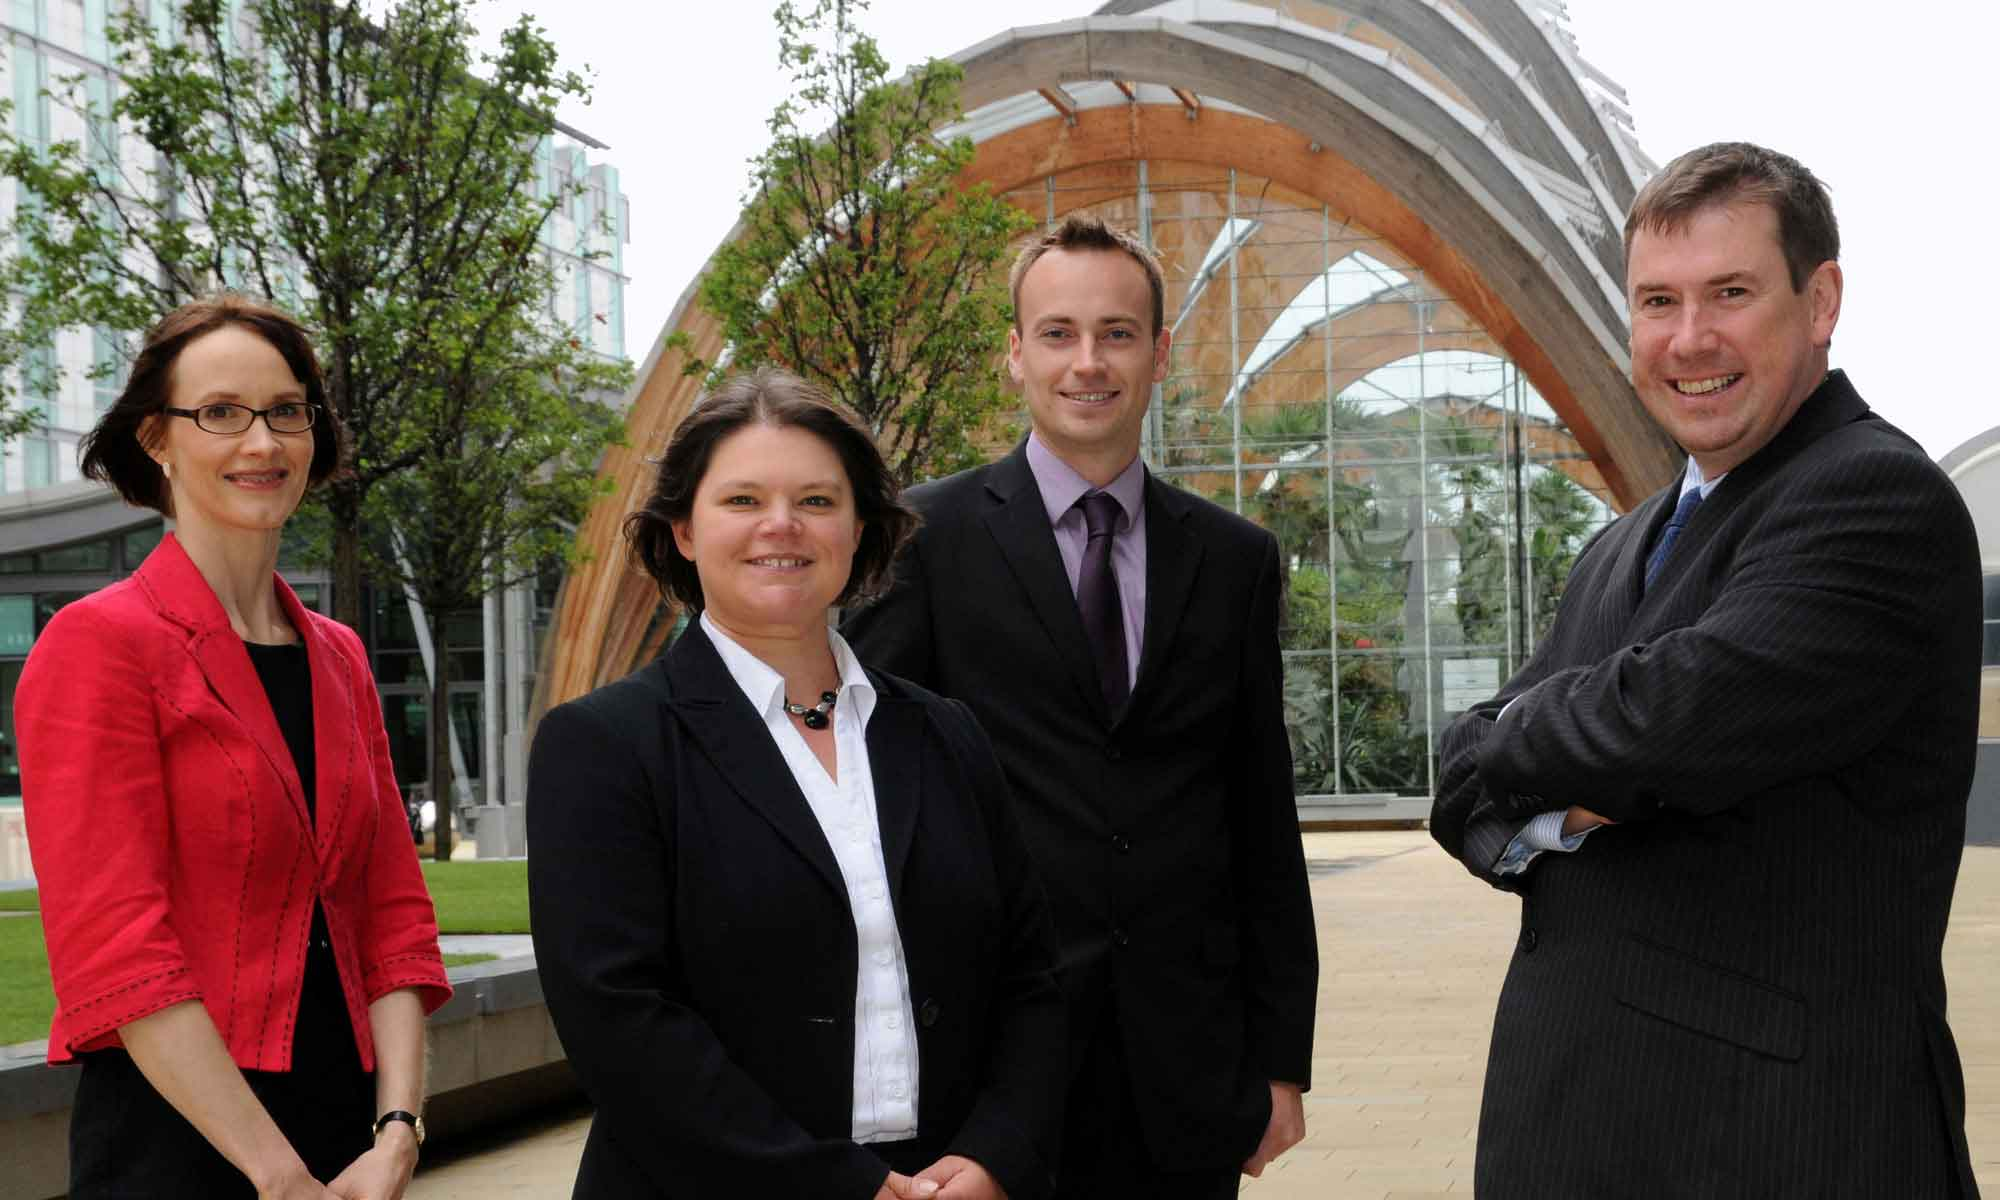 Strategic Corporate Finance team photo - lead deal advisers and experts in company valuations